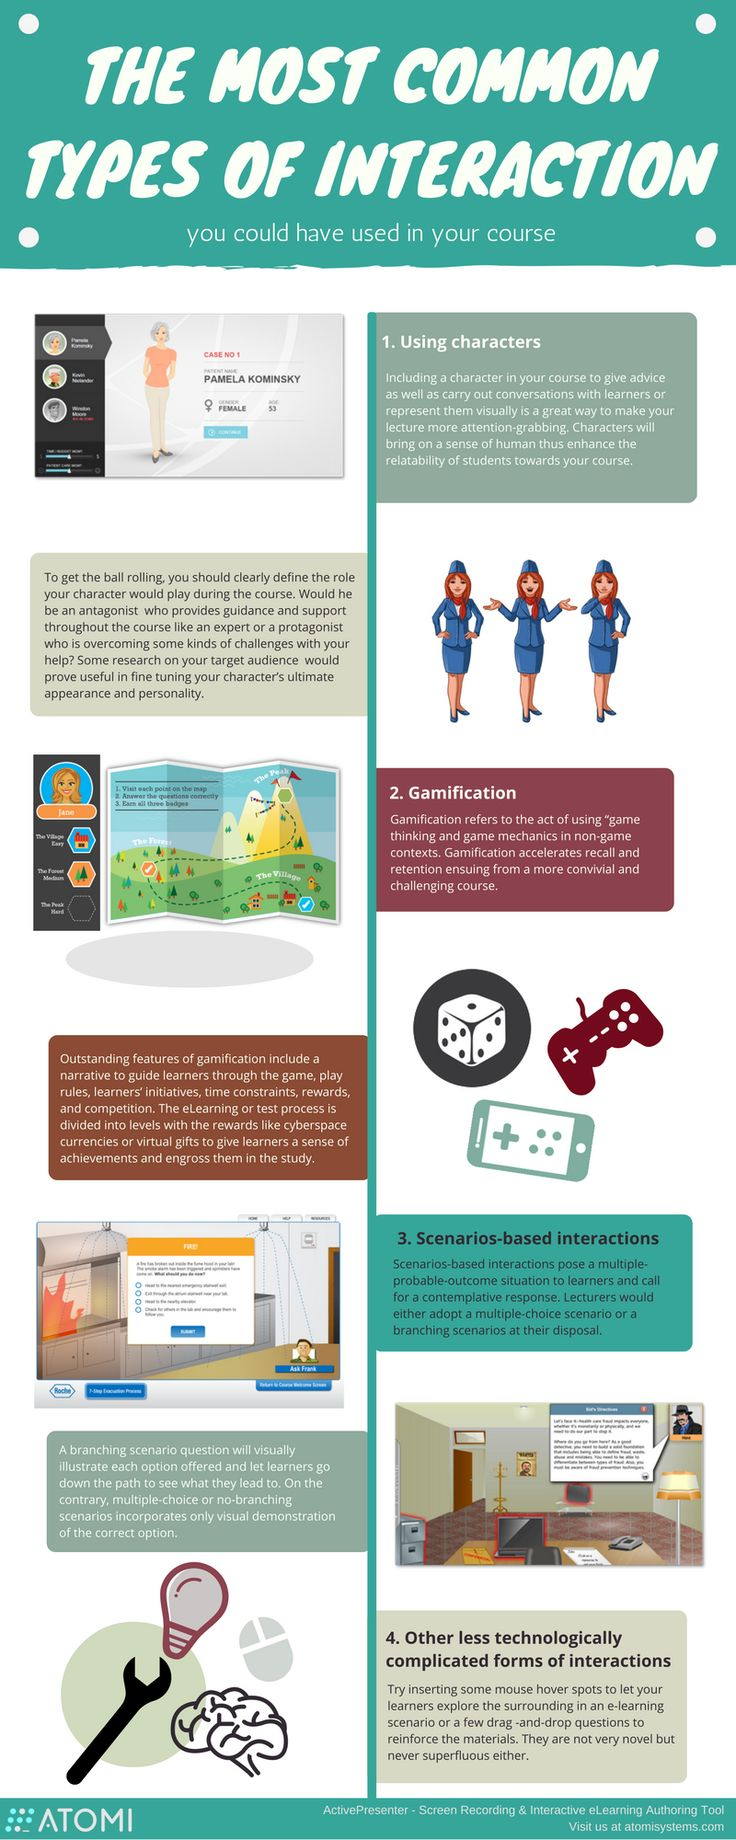 Common Types of Interactions to Use in eLearning Courses Infographic - http://elearninginfographics.com/common-interactions-elearning-courses-infographic/